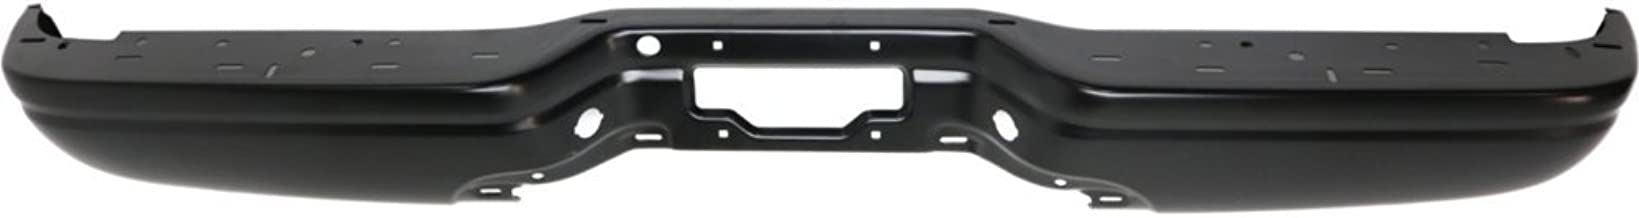 Rear Step Bumper Compatible with Ford F-Series 1997-2007 Powdercoated Black Steel Styleside Standard/Extended Cab